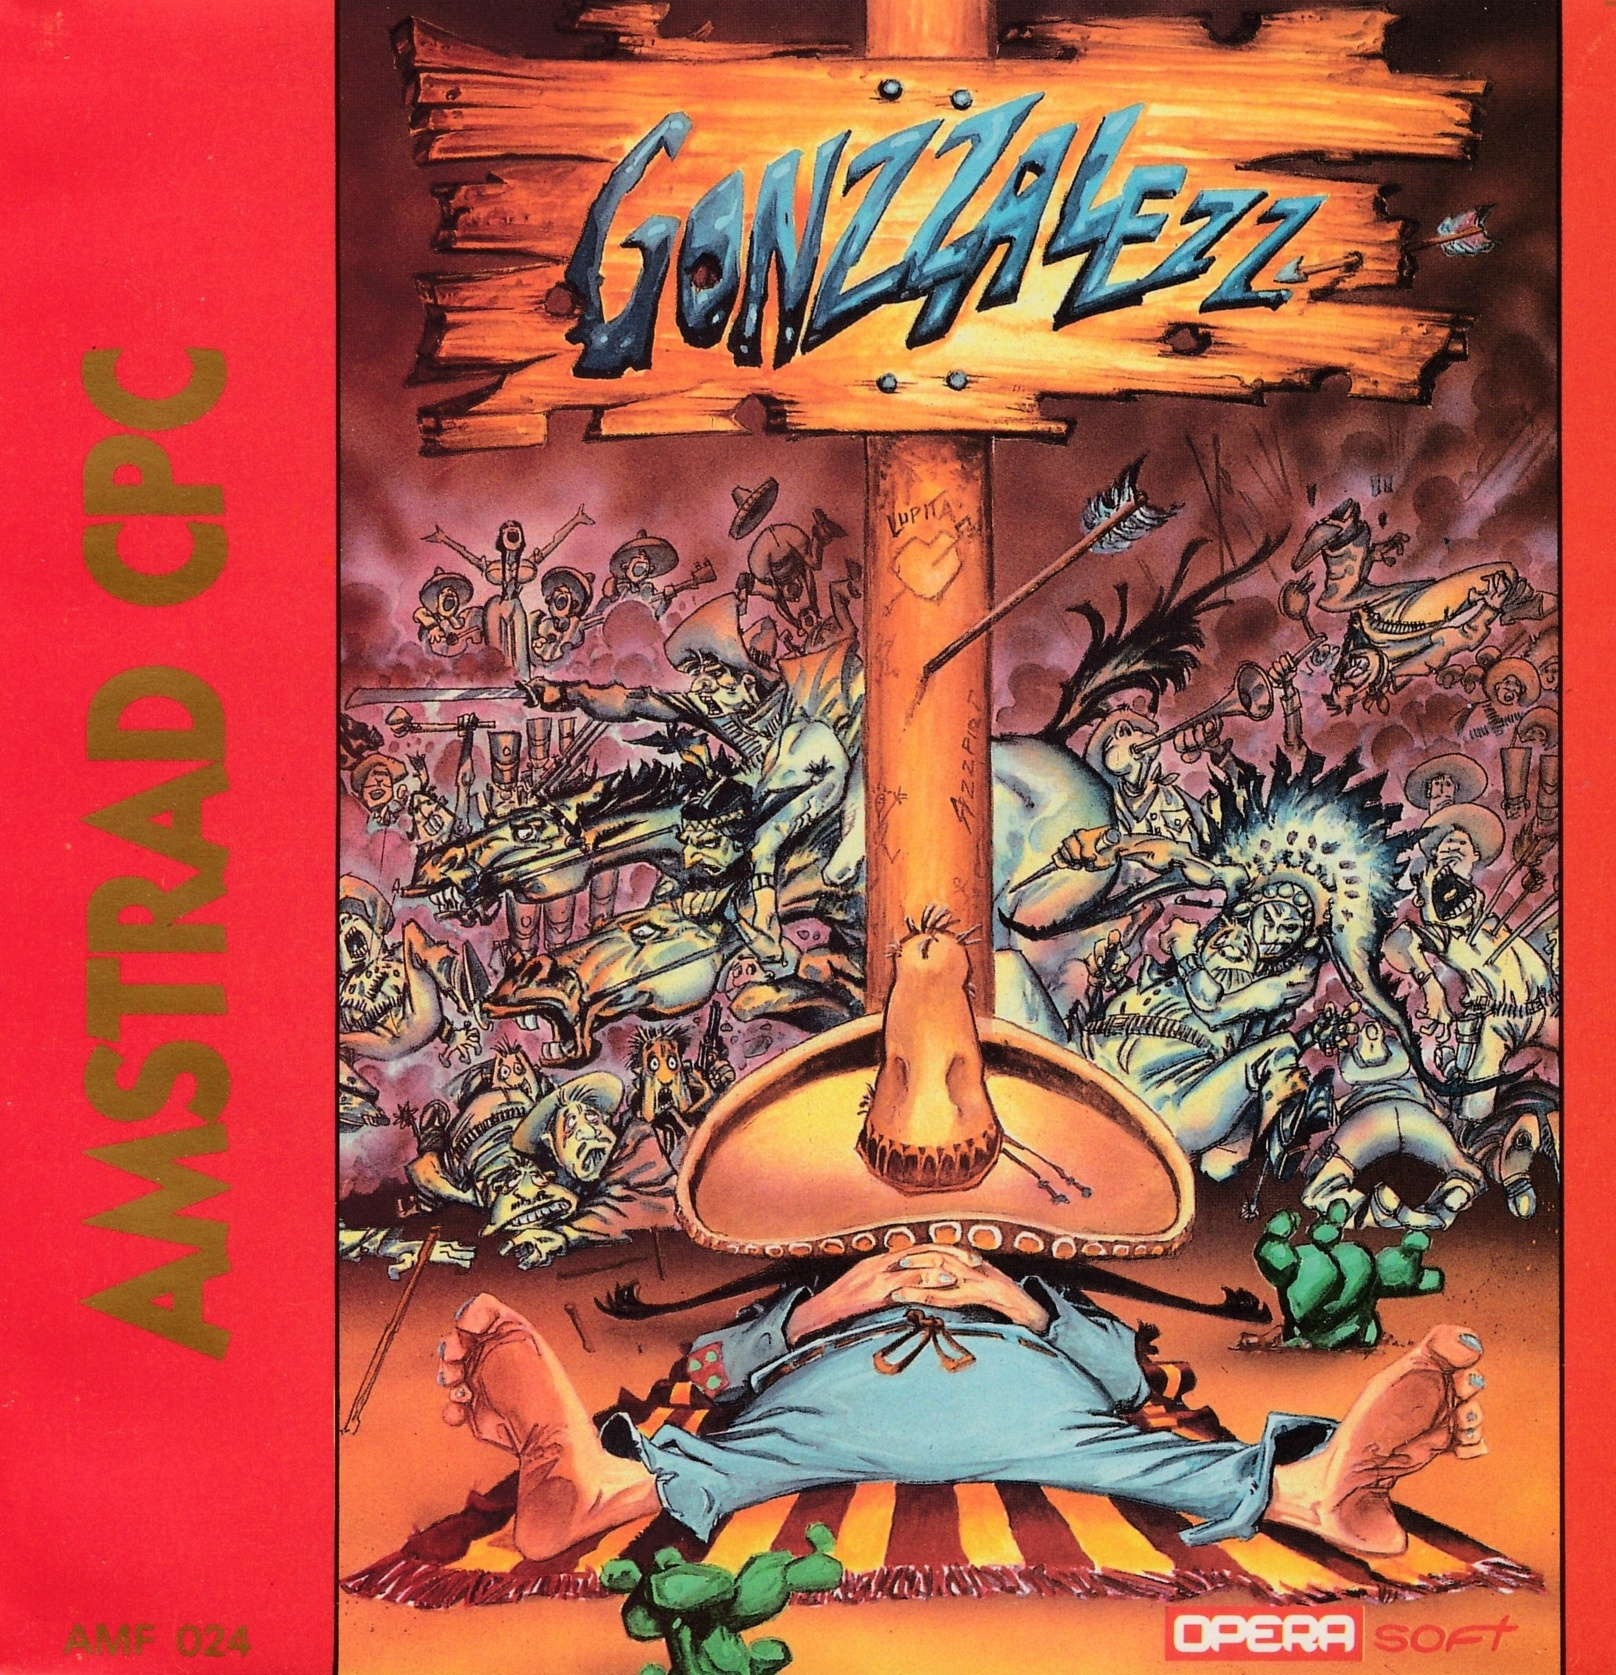 cover of the Amstrad CPC game Gonzzalezz  by GameBase CPC